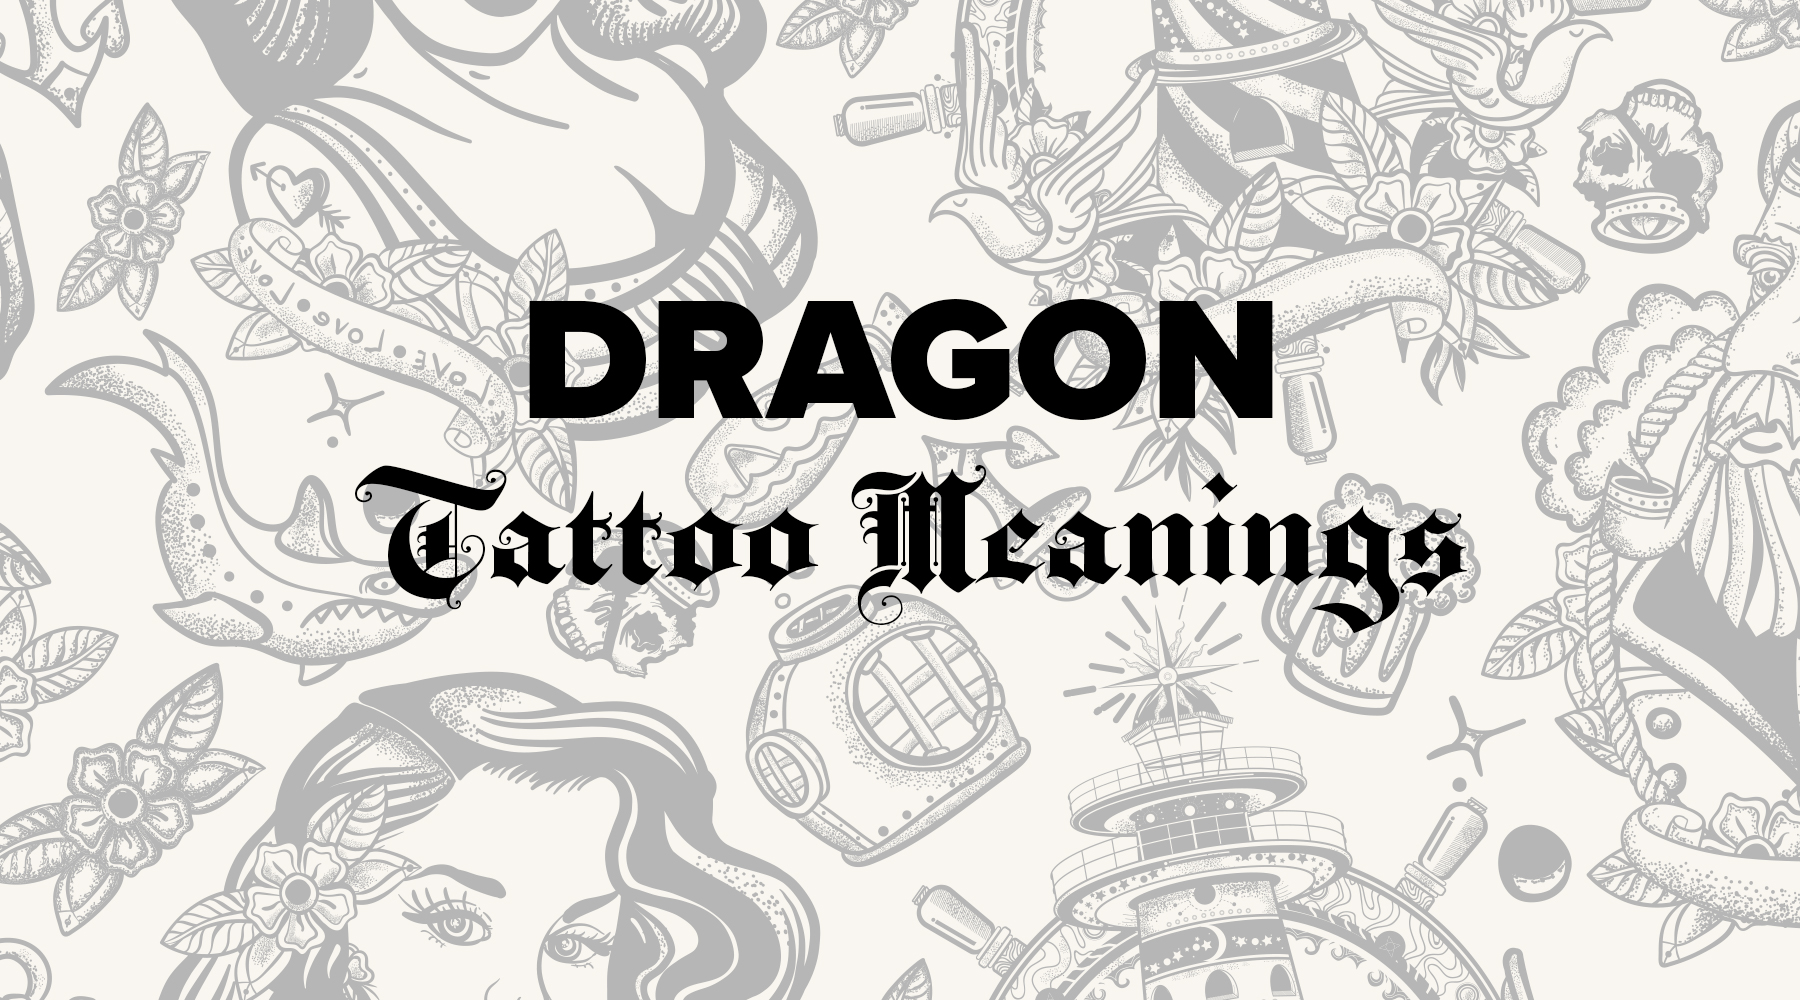 Custom Tattoo Design is the world's leader in online tattoo designs. With tattoo designers from all over the world, we can draw your dream tattoo. Submit your ideas and our team of artists will work with you until your tattoo is perfect.